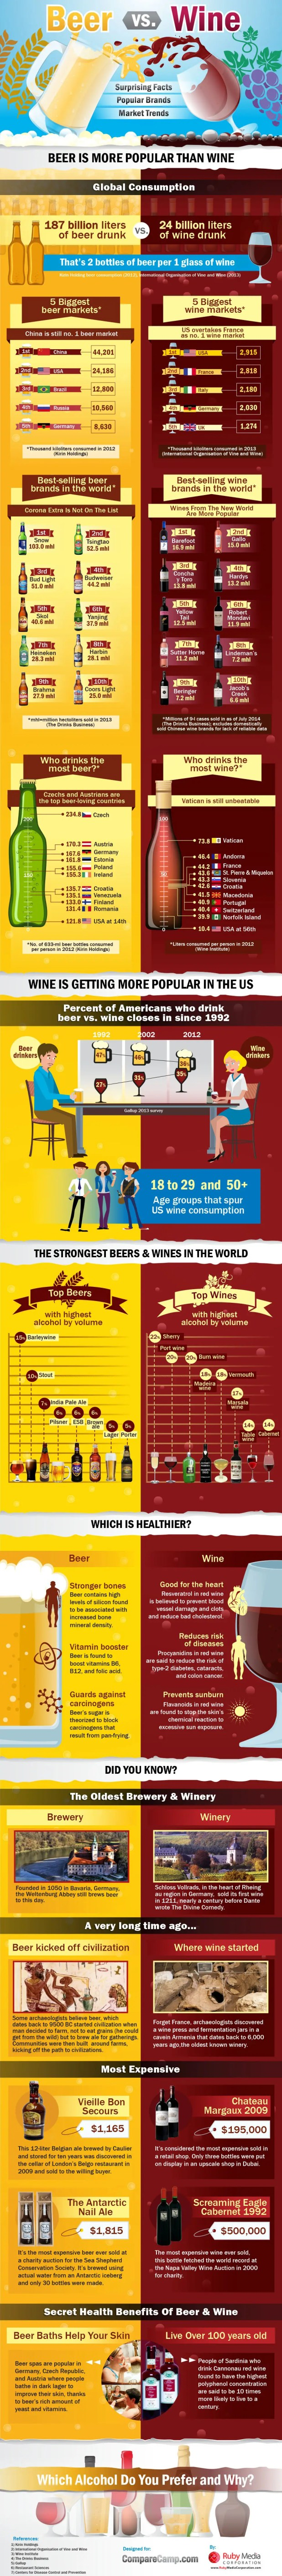 beer wine infographic